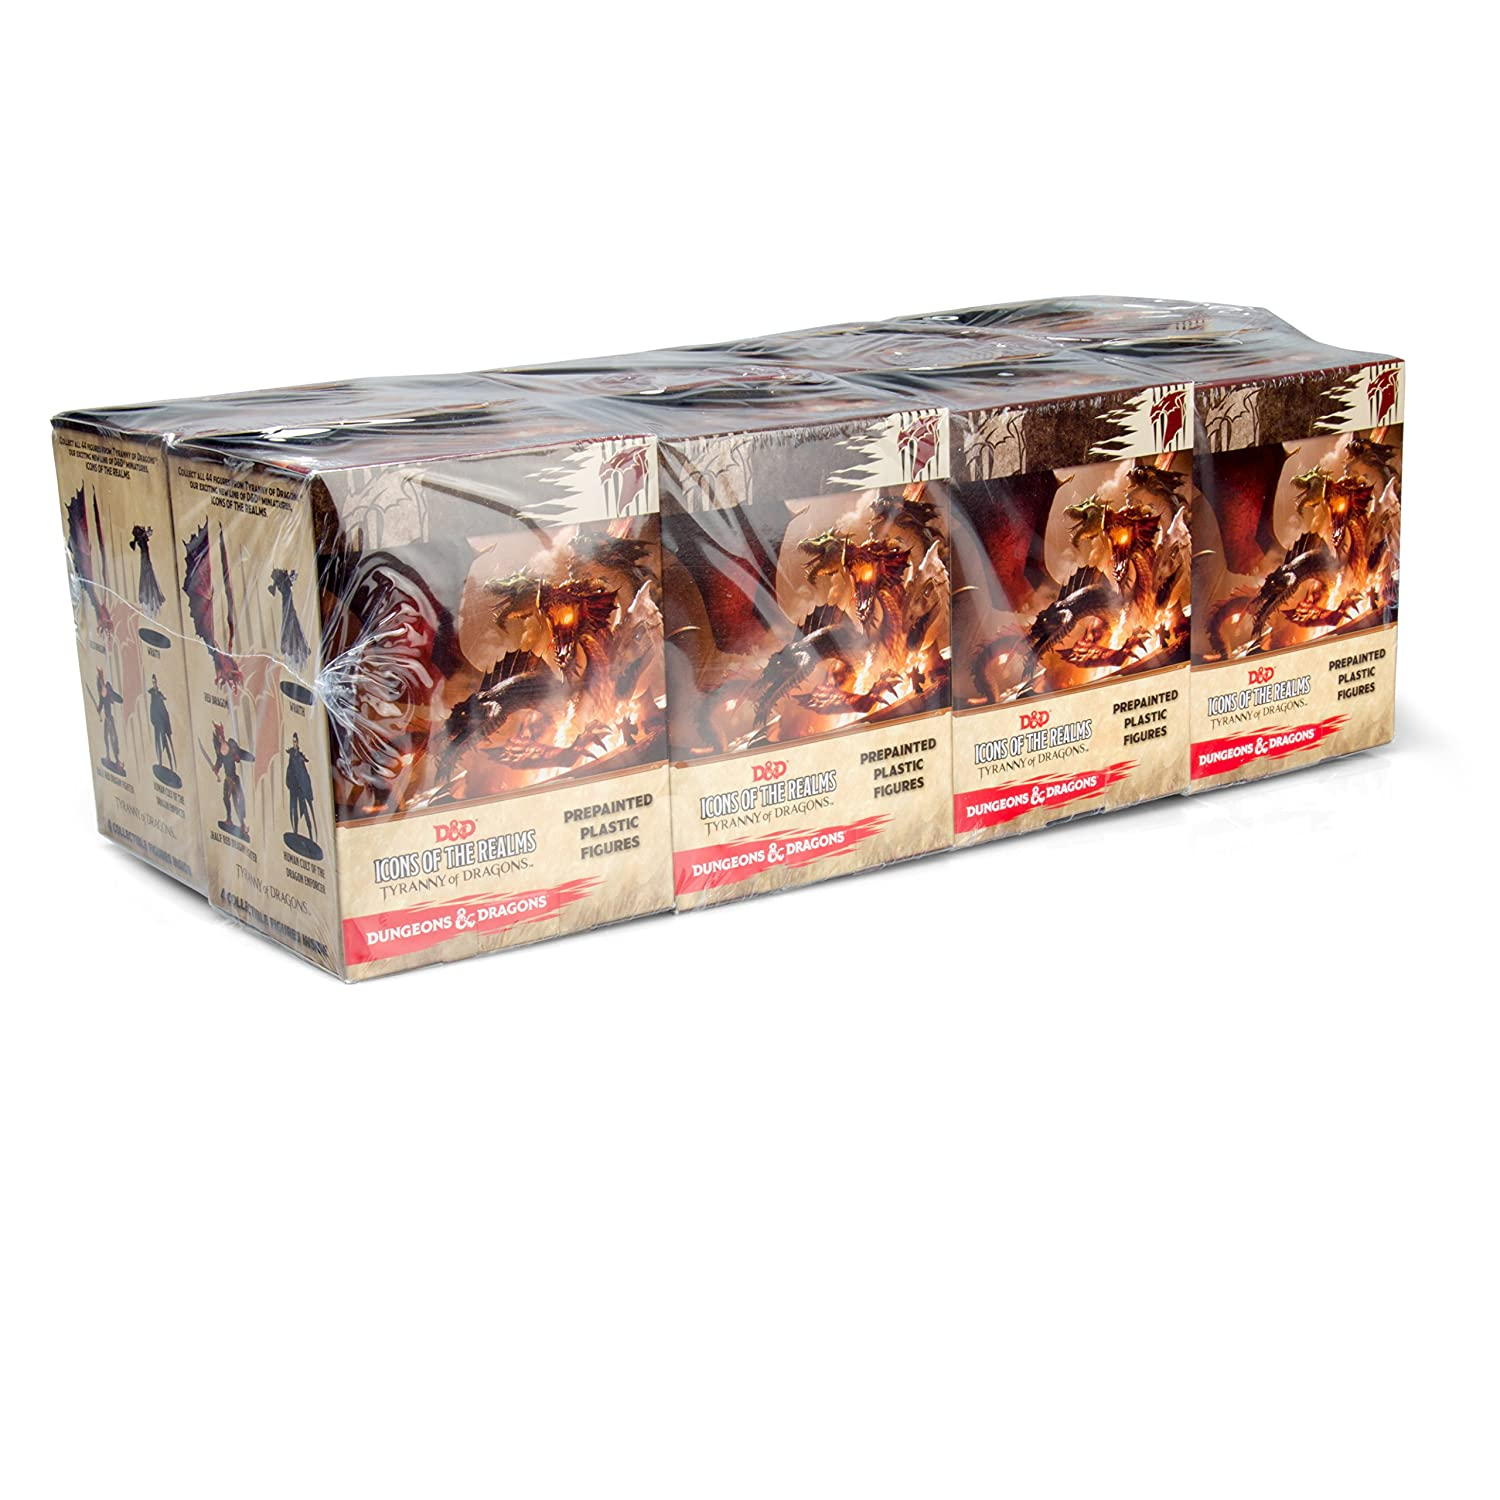 Amazon com: NEW Wizkids Wizards of the Coast Dungeons & Dragons